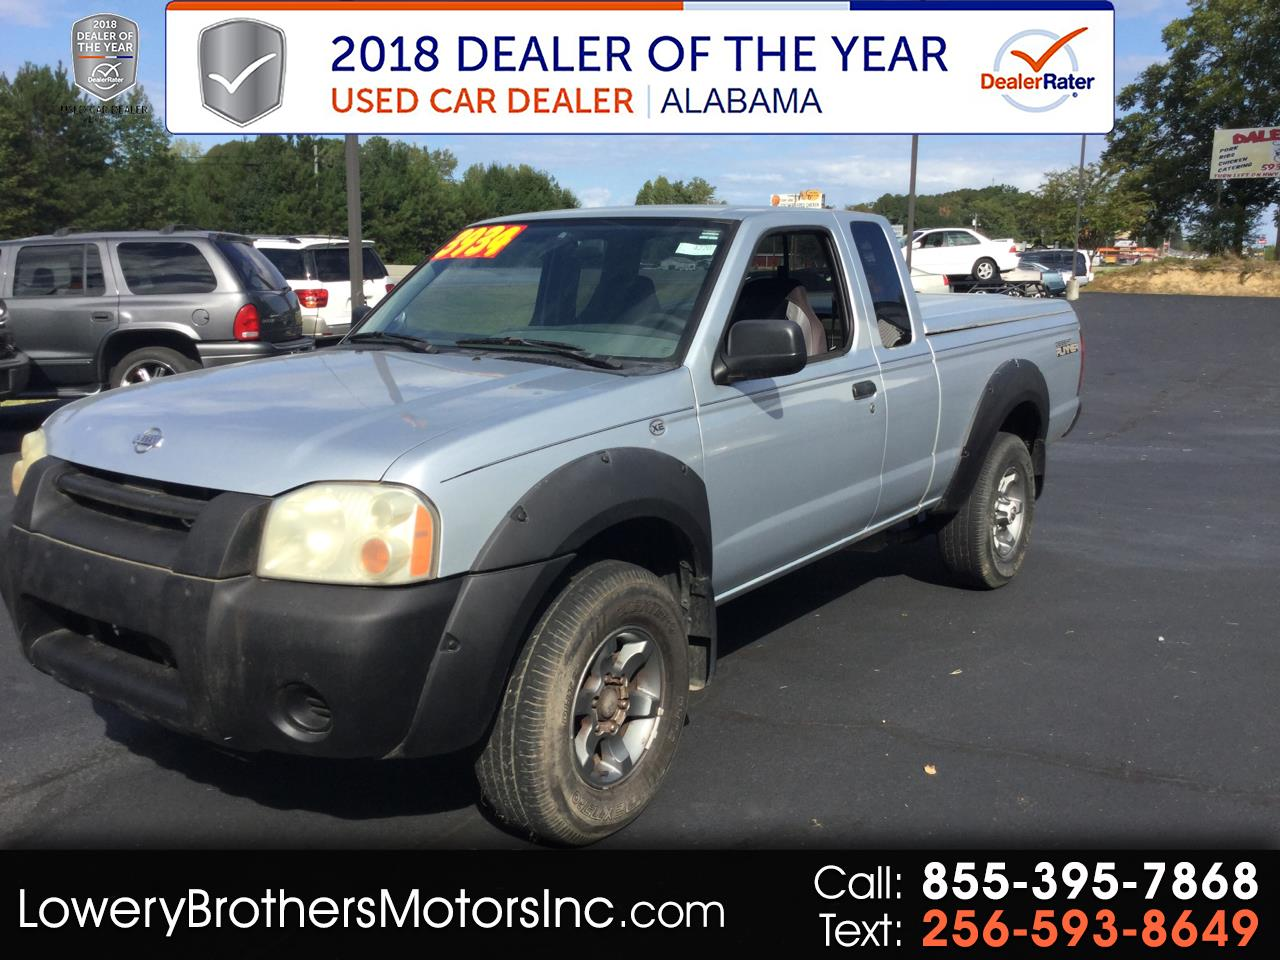 2001 Nissan Frontier 2WD XE King Cab V6 Manual Desert Runner